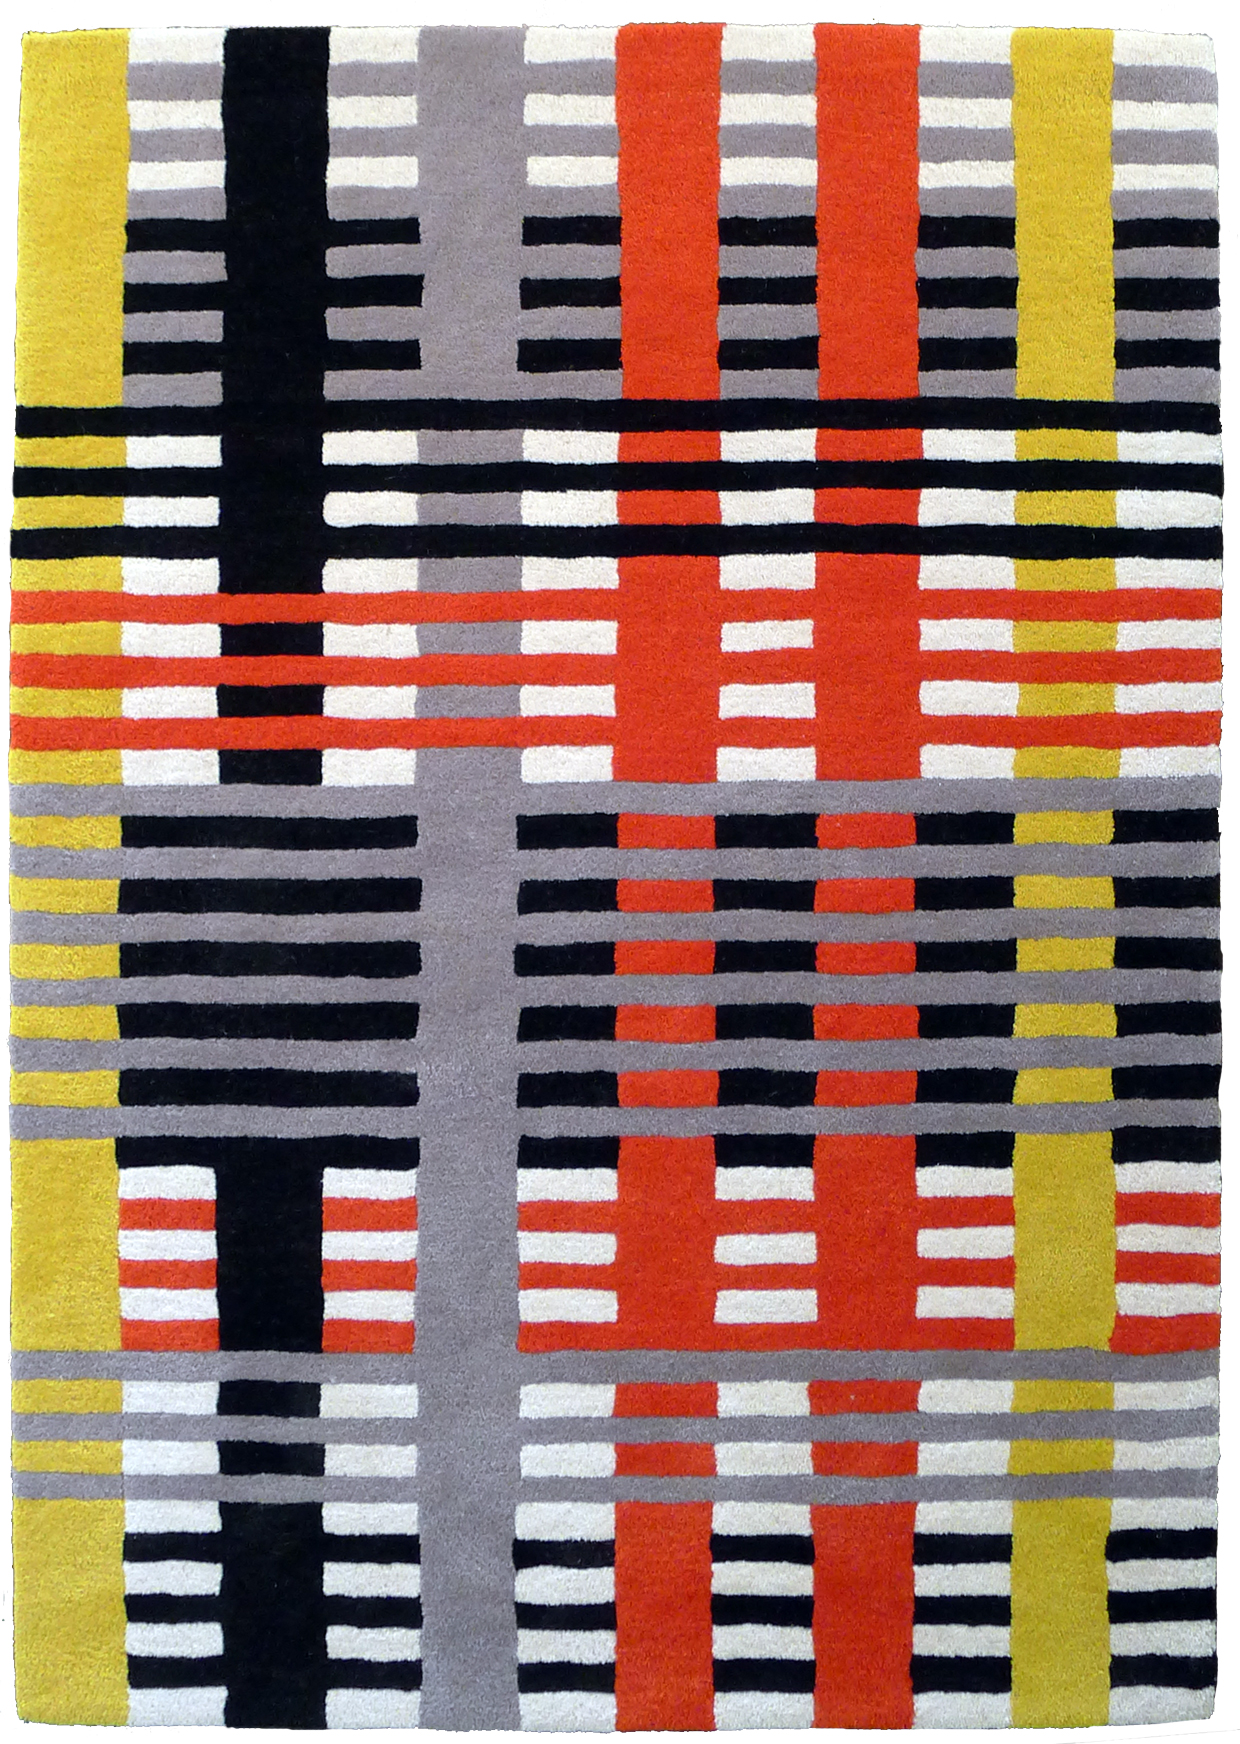 Anni Albers (1899-1994) Study Rug Initially conceived as a 1926 cotton and silk wall hanging Hand-tufted rug, wool Available in two sizes: 0.91 x 1.52 m 1.22 x 1.83 m Produced in association with the Josef and Anni Albers Foundation Edition of 150